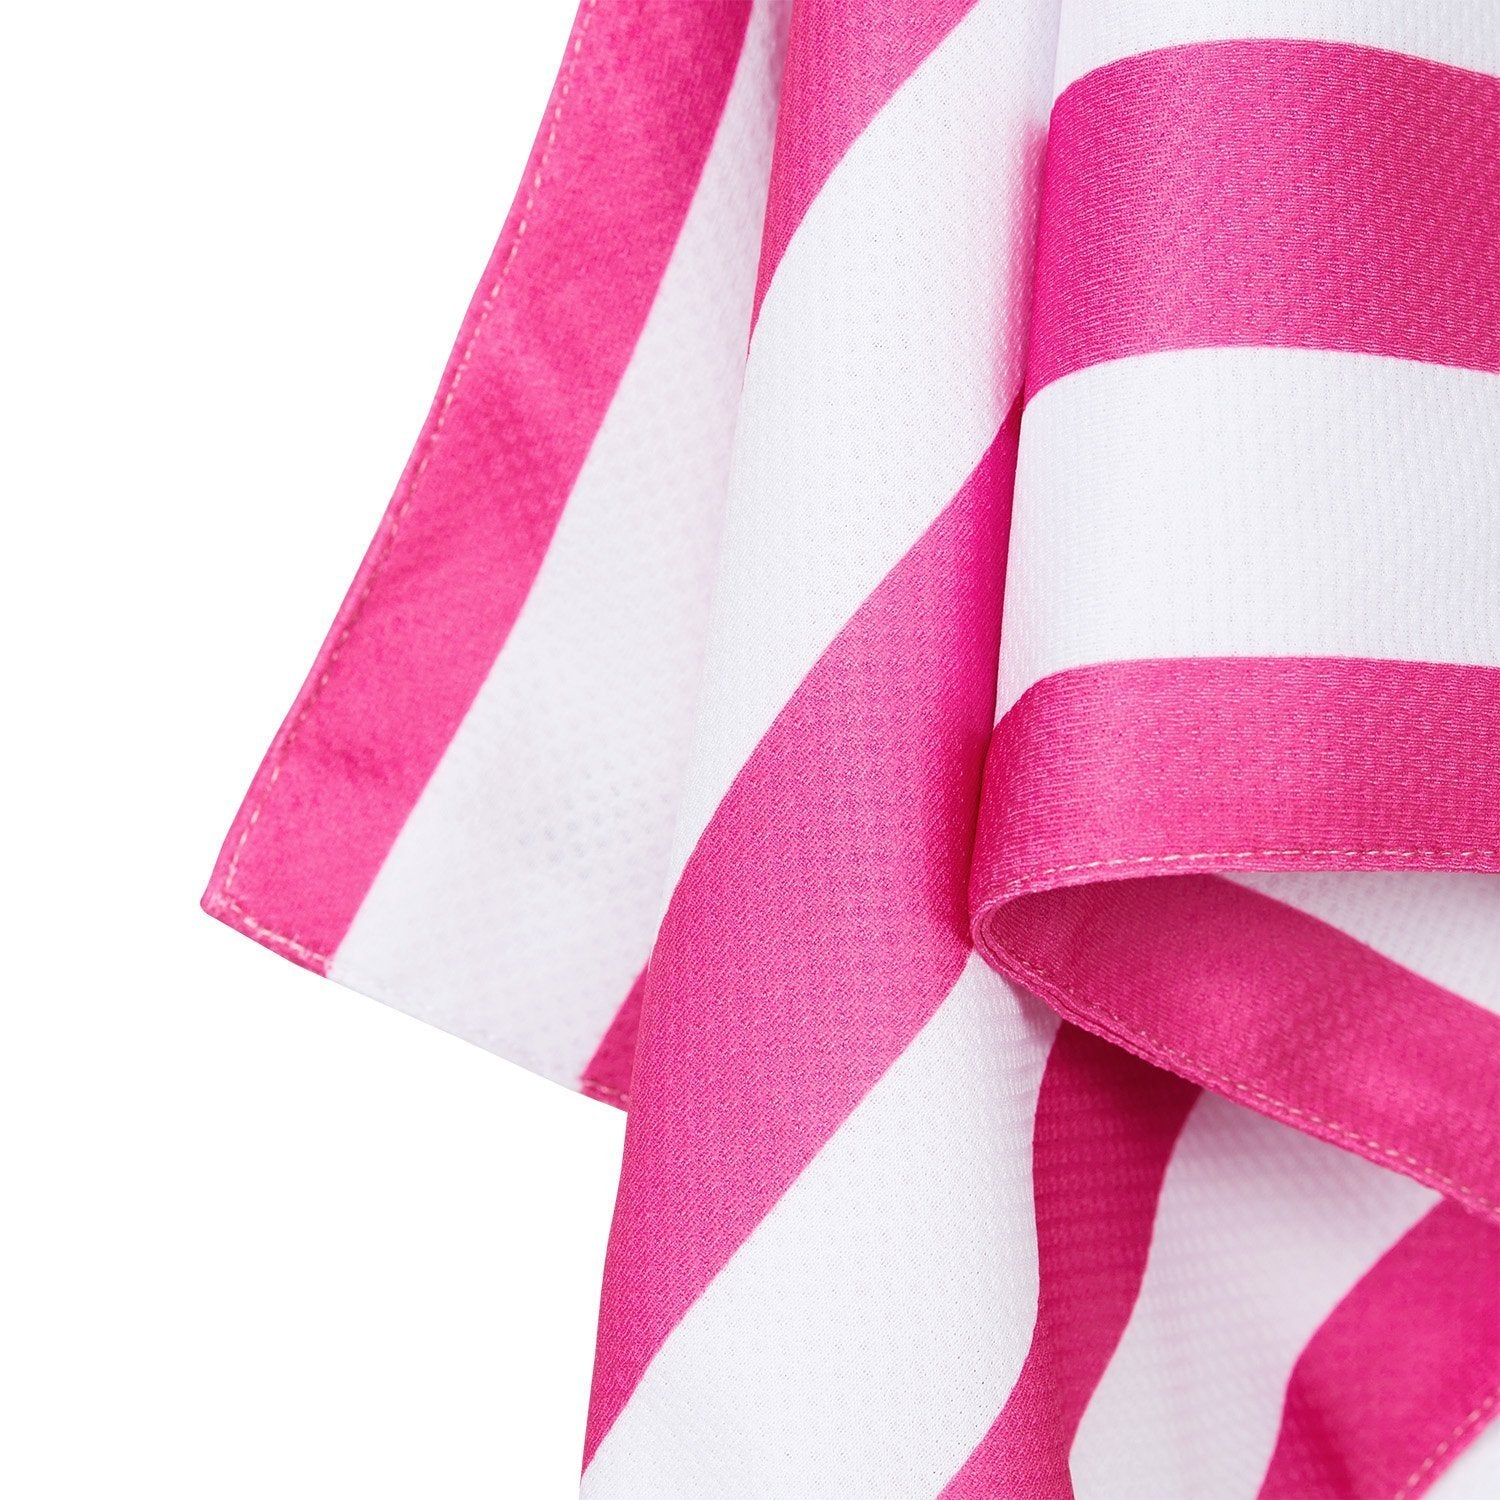 Dock & Bay: Cooling Towel Cabana Collection - Phi Phi Pink